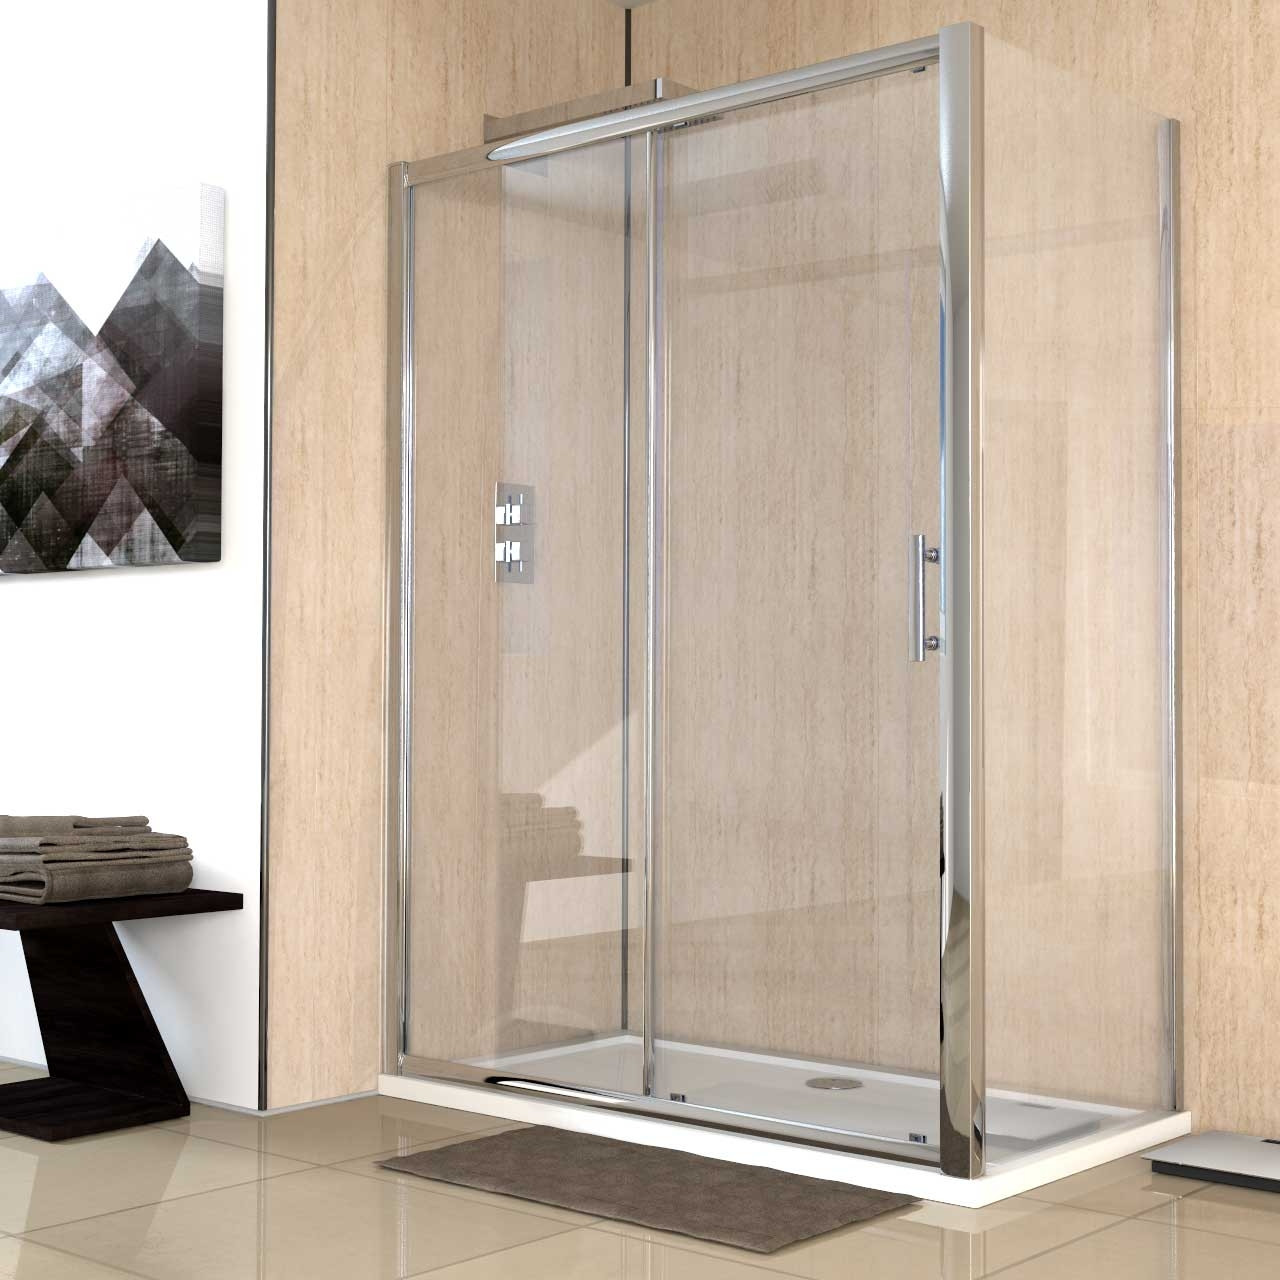 Series 8 1400mm x 760mm Sliding Door Shower Enclosure